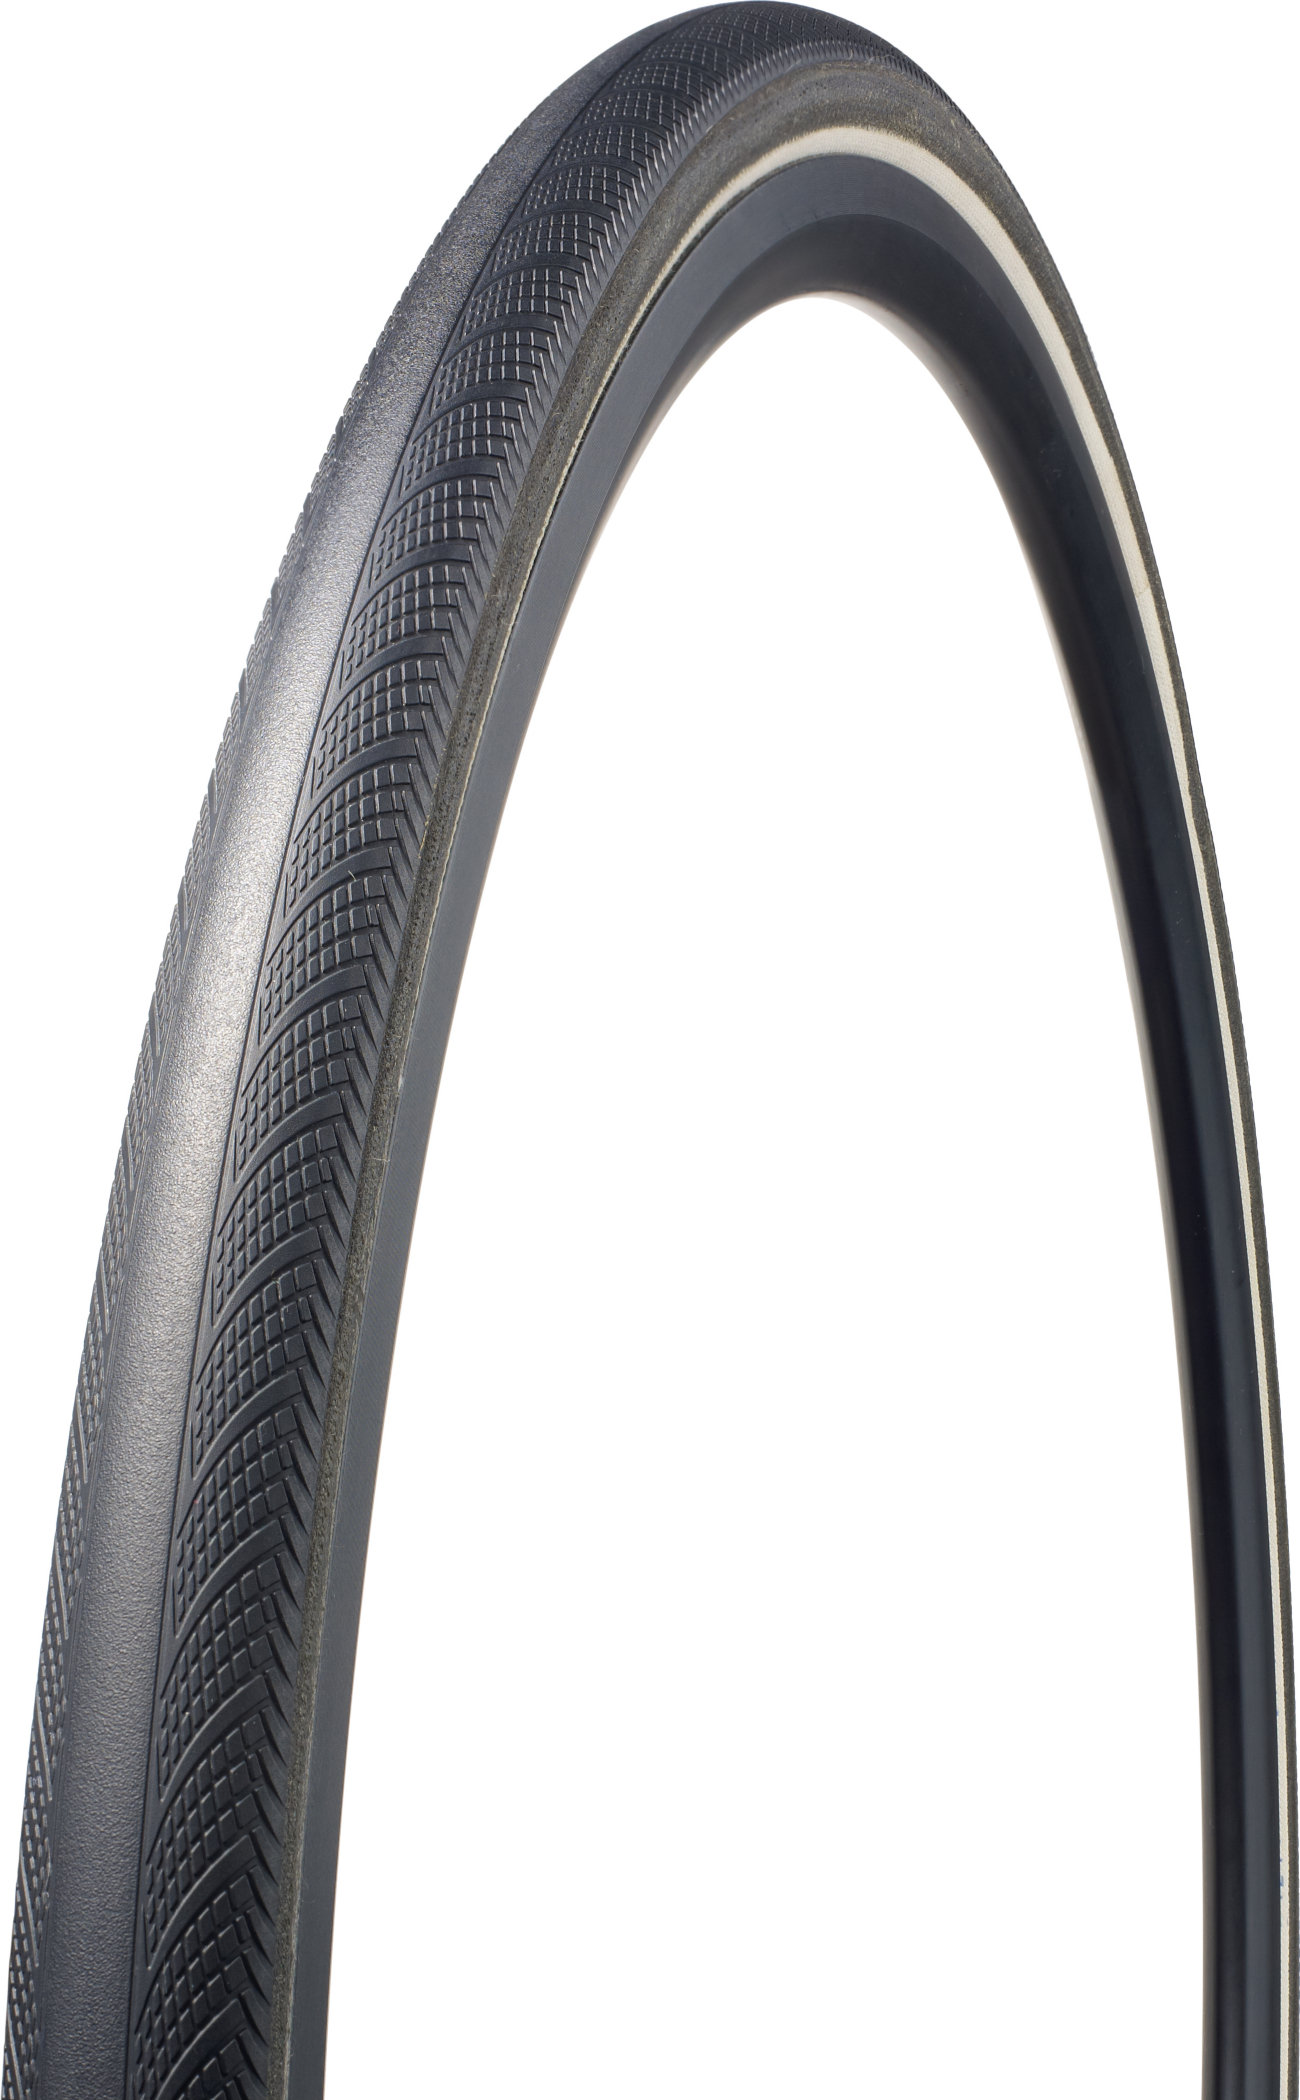 SPECIALIZED ESPOIR TUBULAR TIRE 28X23MM - Alpha Bikes